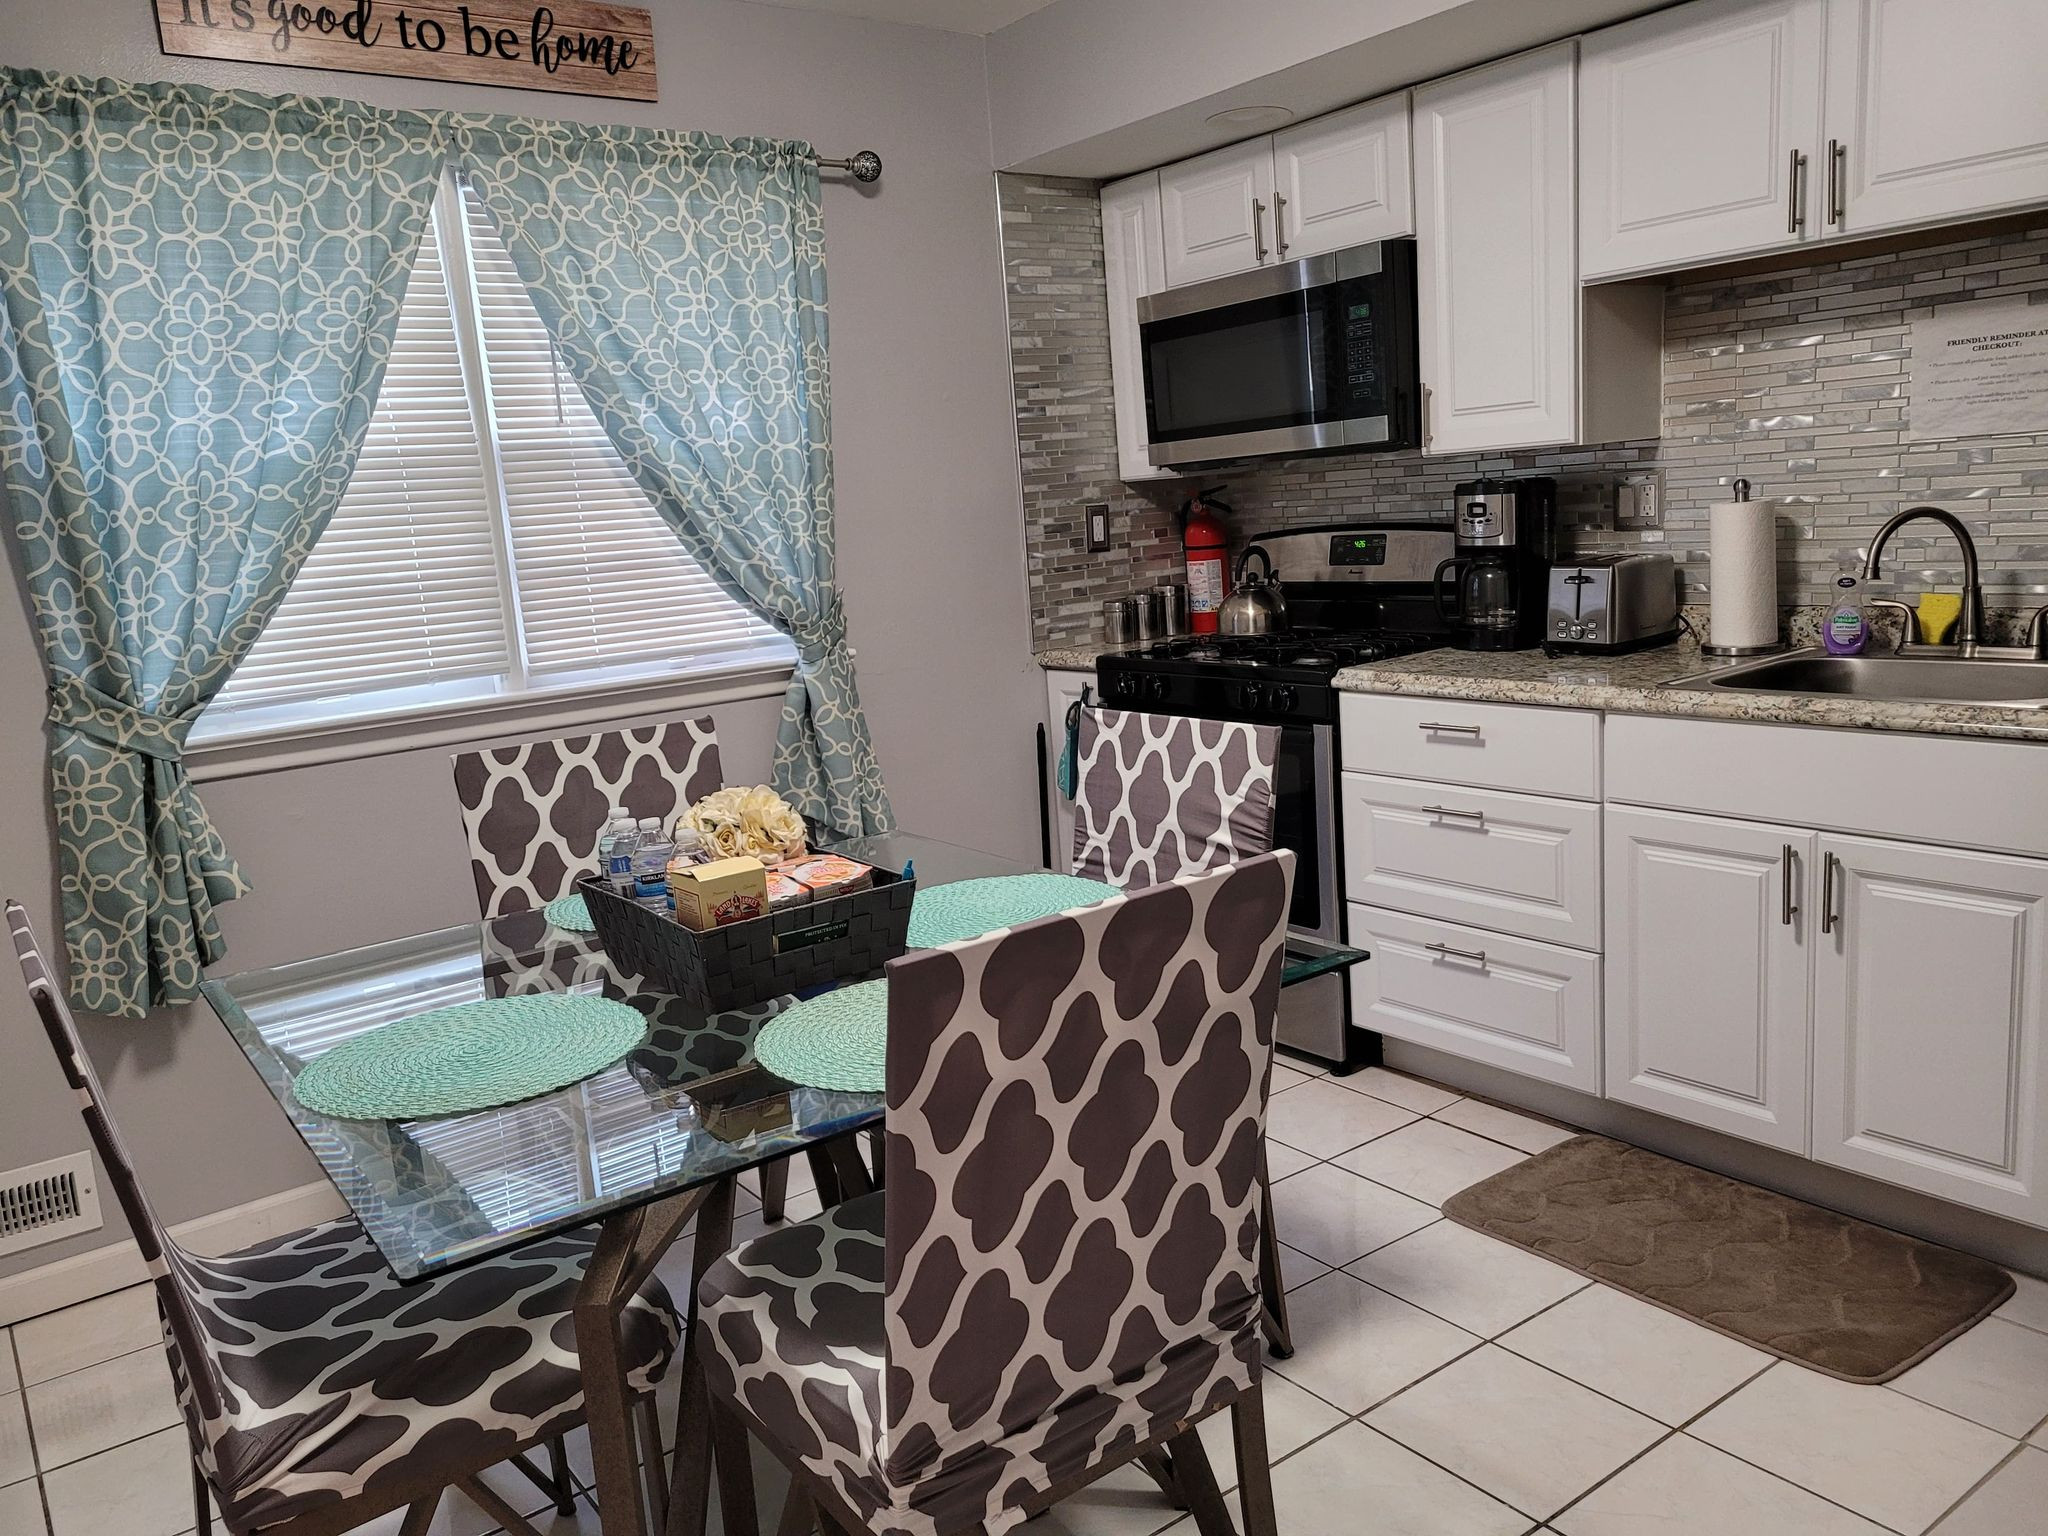 3bed 1 bath(Deep Cleaning)